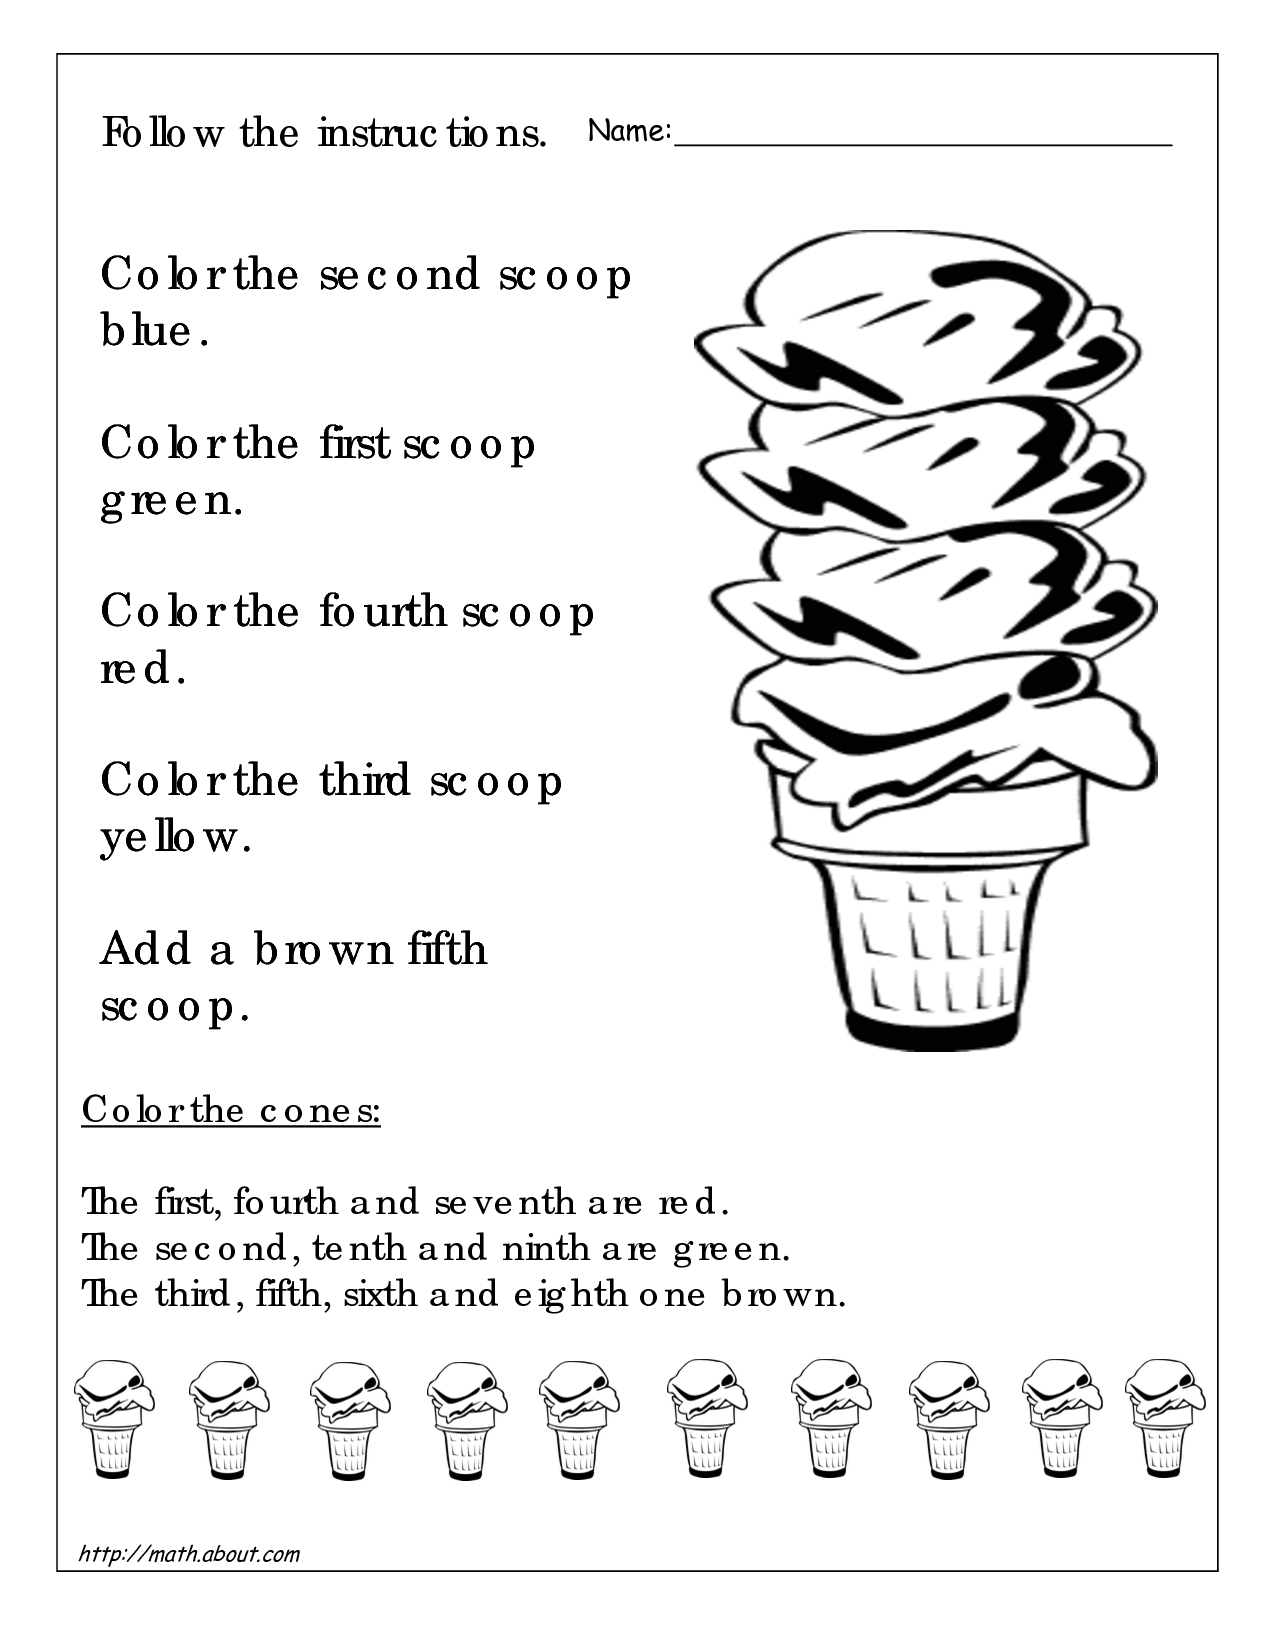 Fun Worksheets For 3rd Grade : Math worksheets for rd graders st grade printable